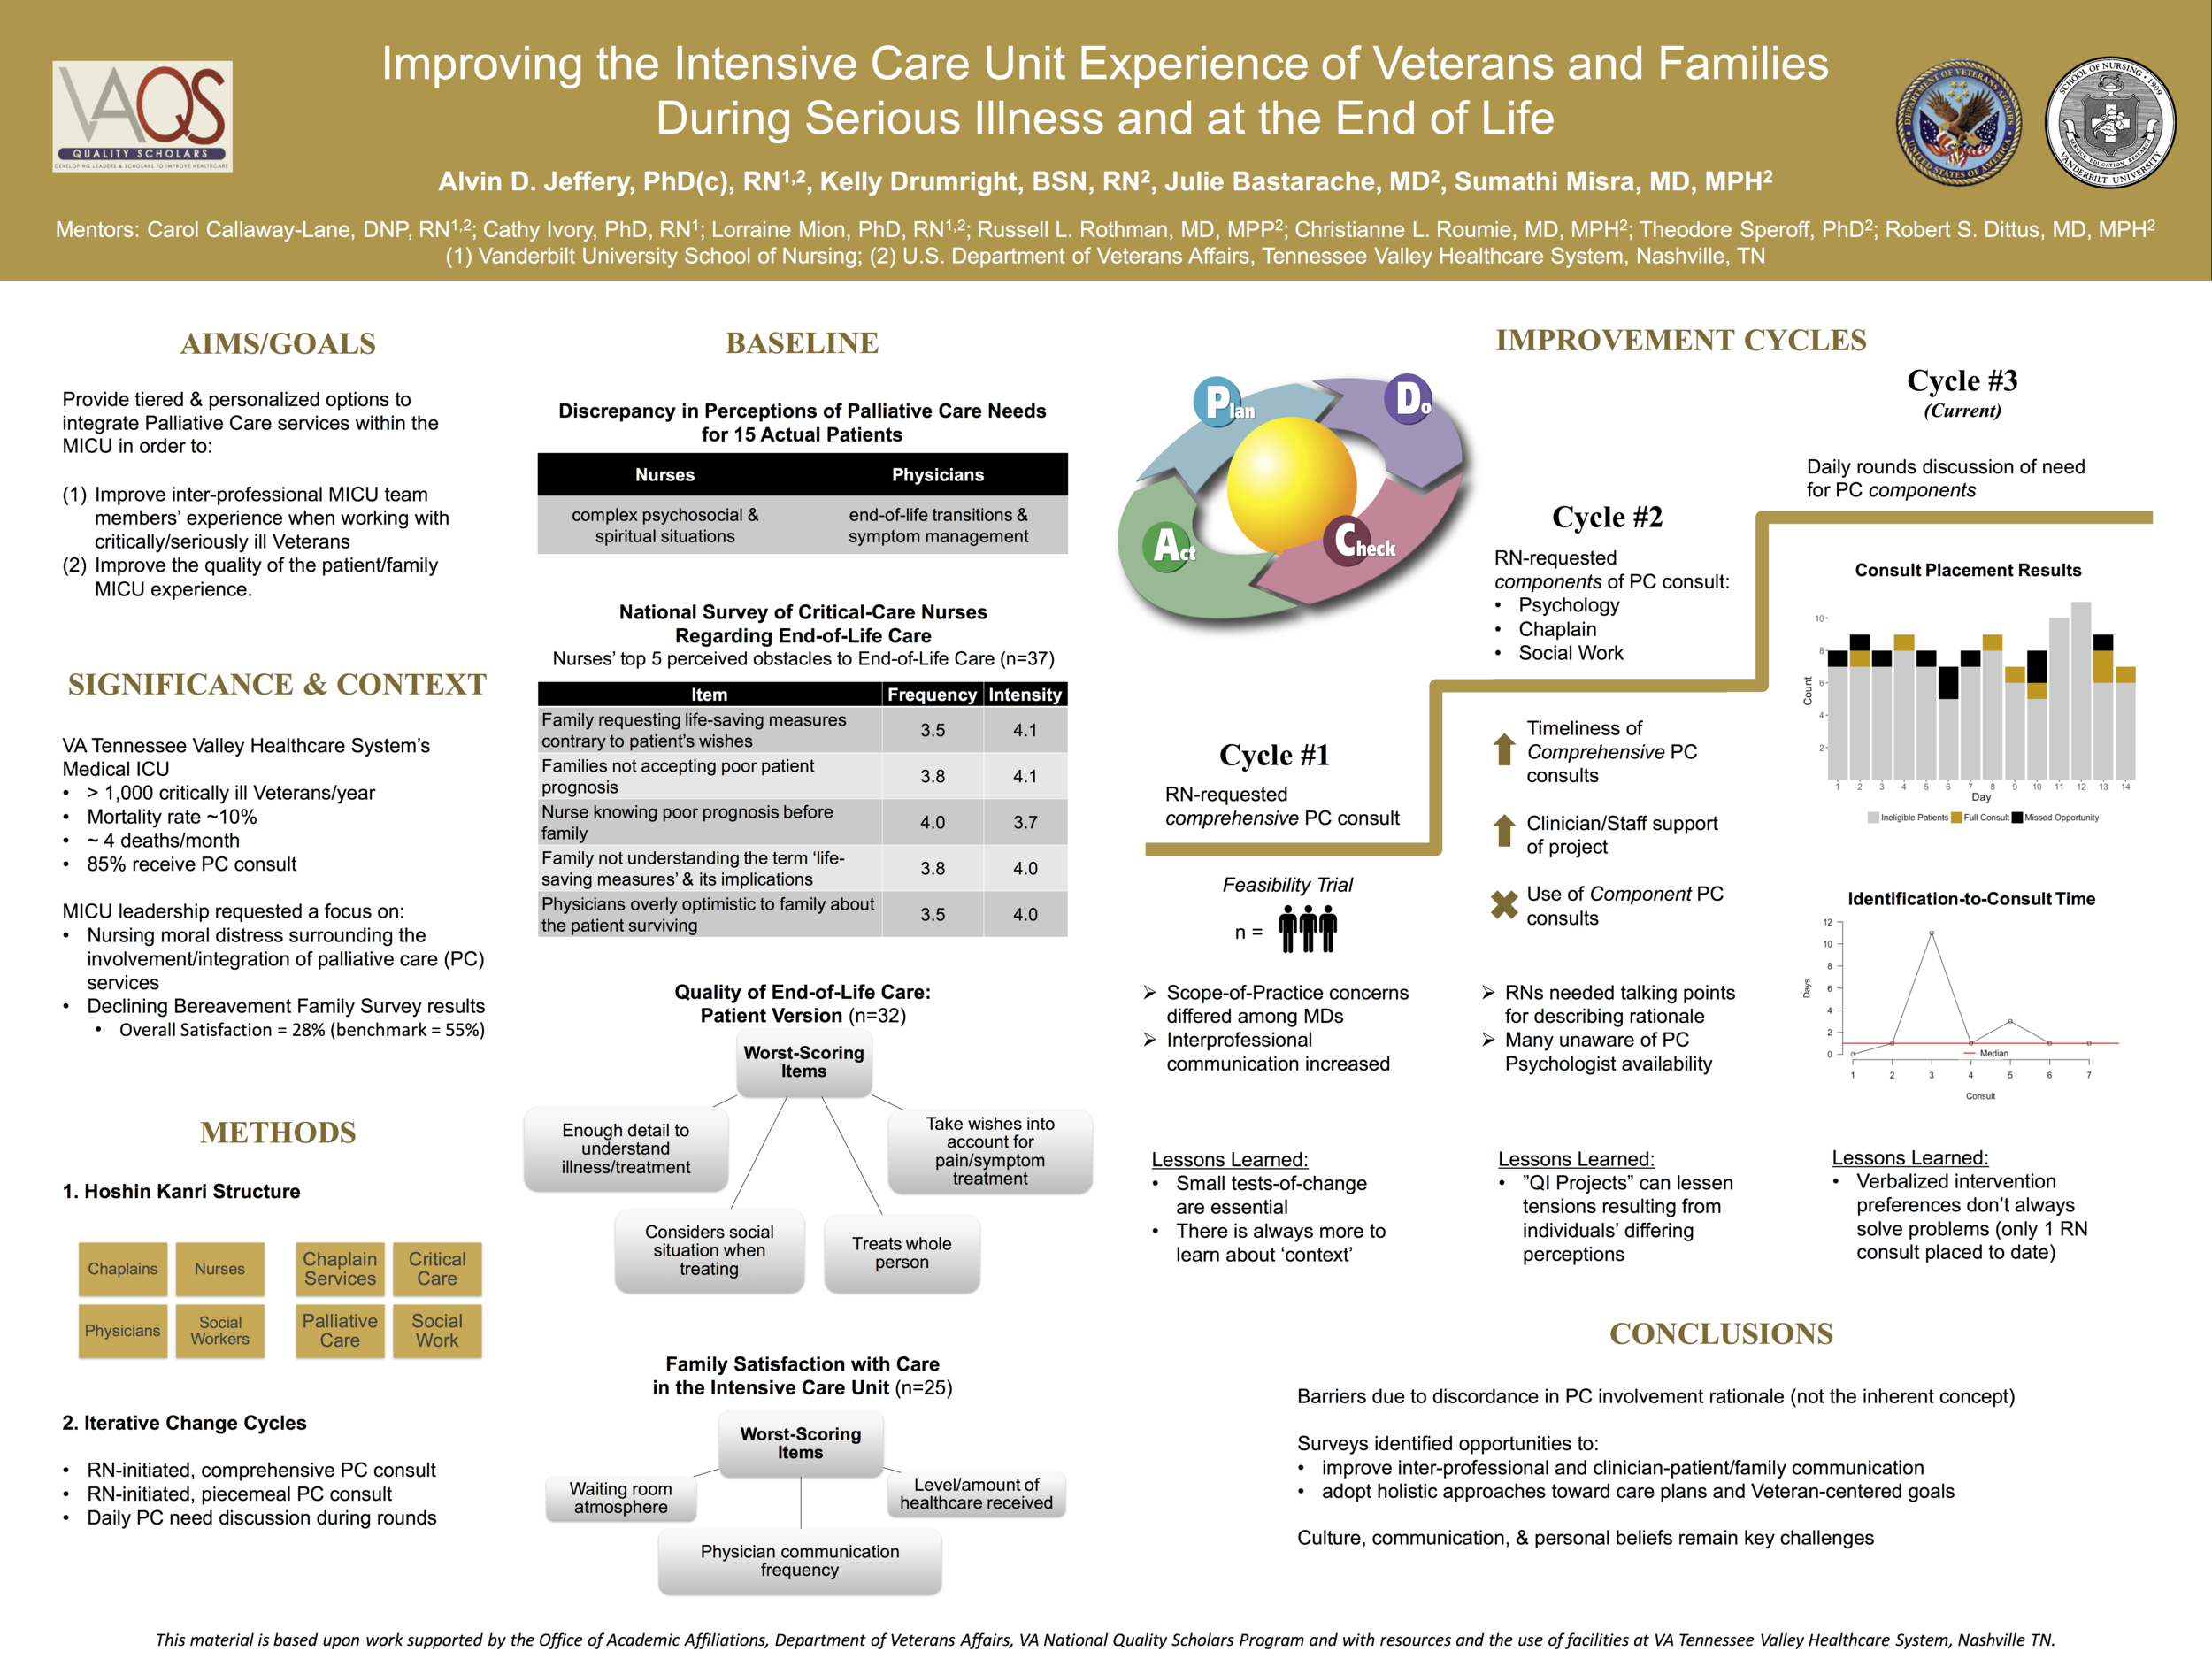 Description & interim findings from my primary quality improvement project within the VA.